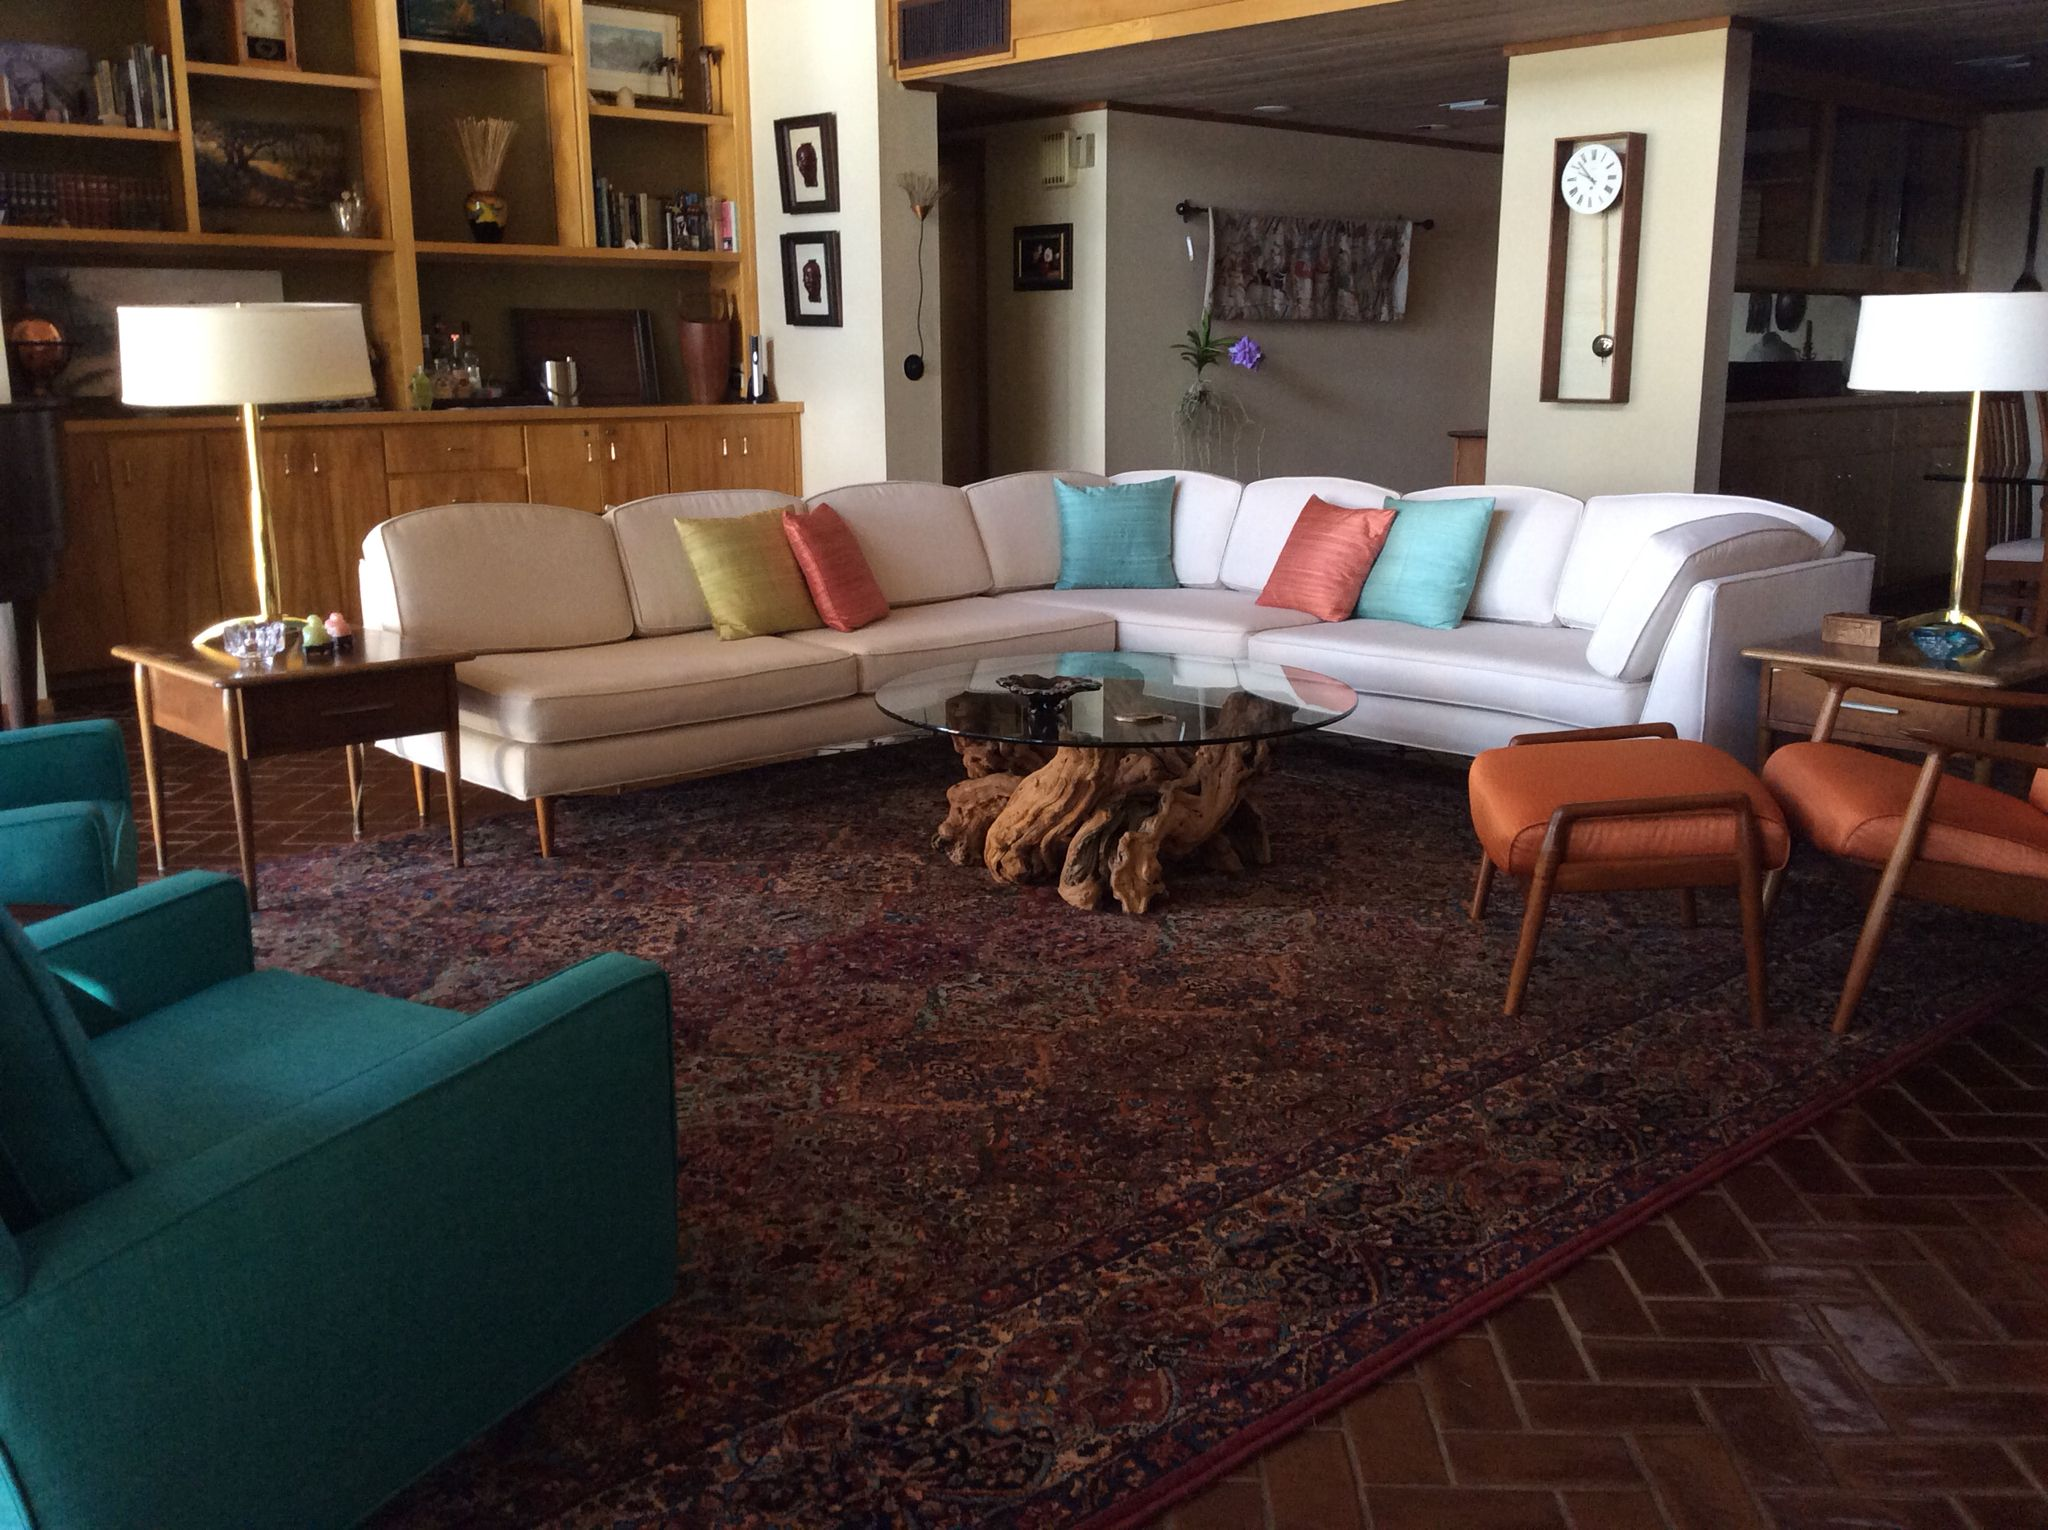 Good The Marzee Sectional Circa 1962 By Lancaster Furniture, Portland Maine